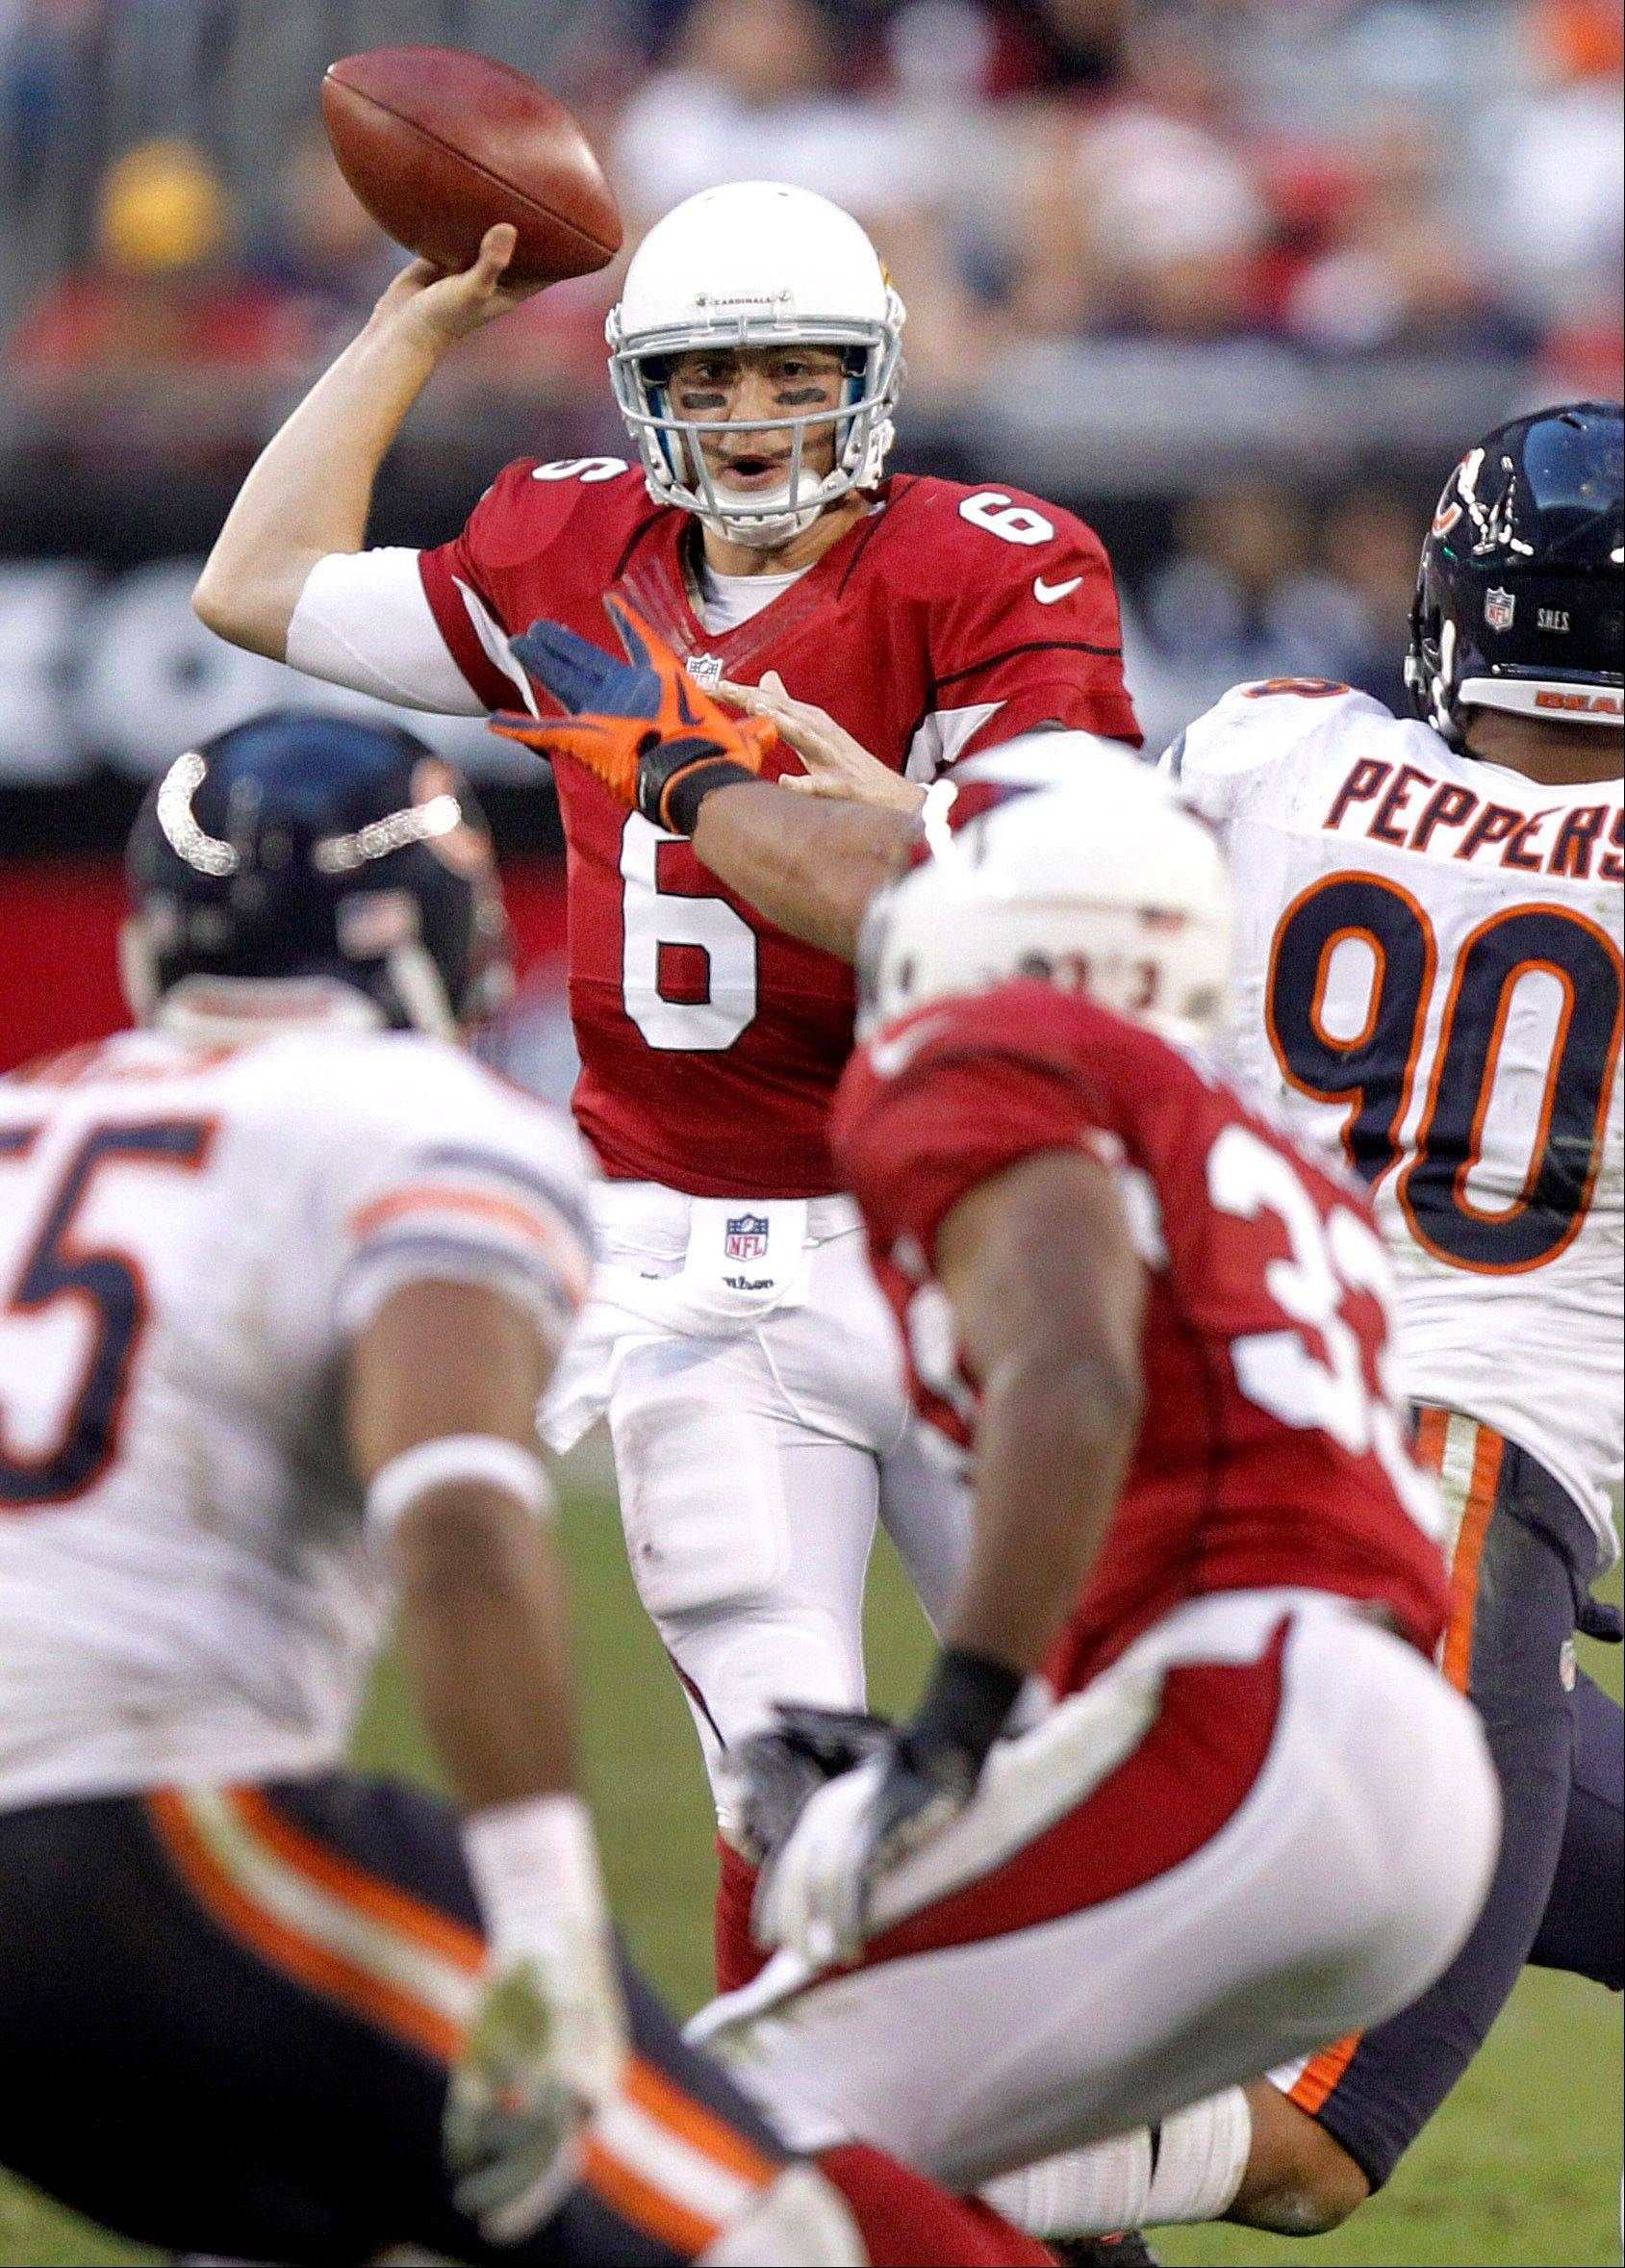 Arizona Cardinals quarterback Brian Hoyer looks to pass against the Chicago Bears during the second half.